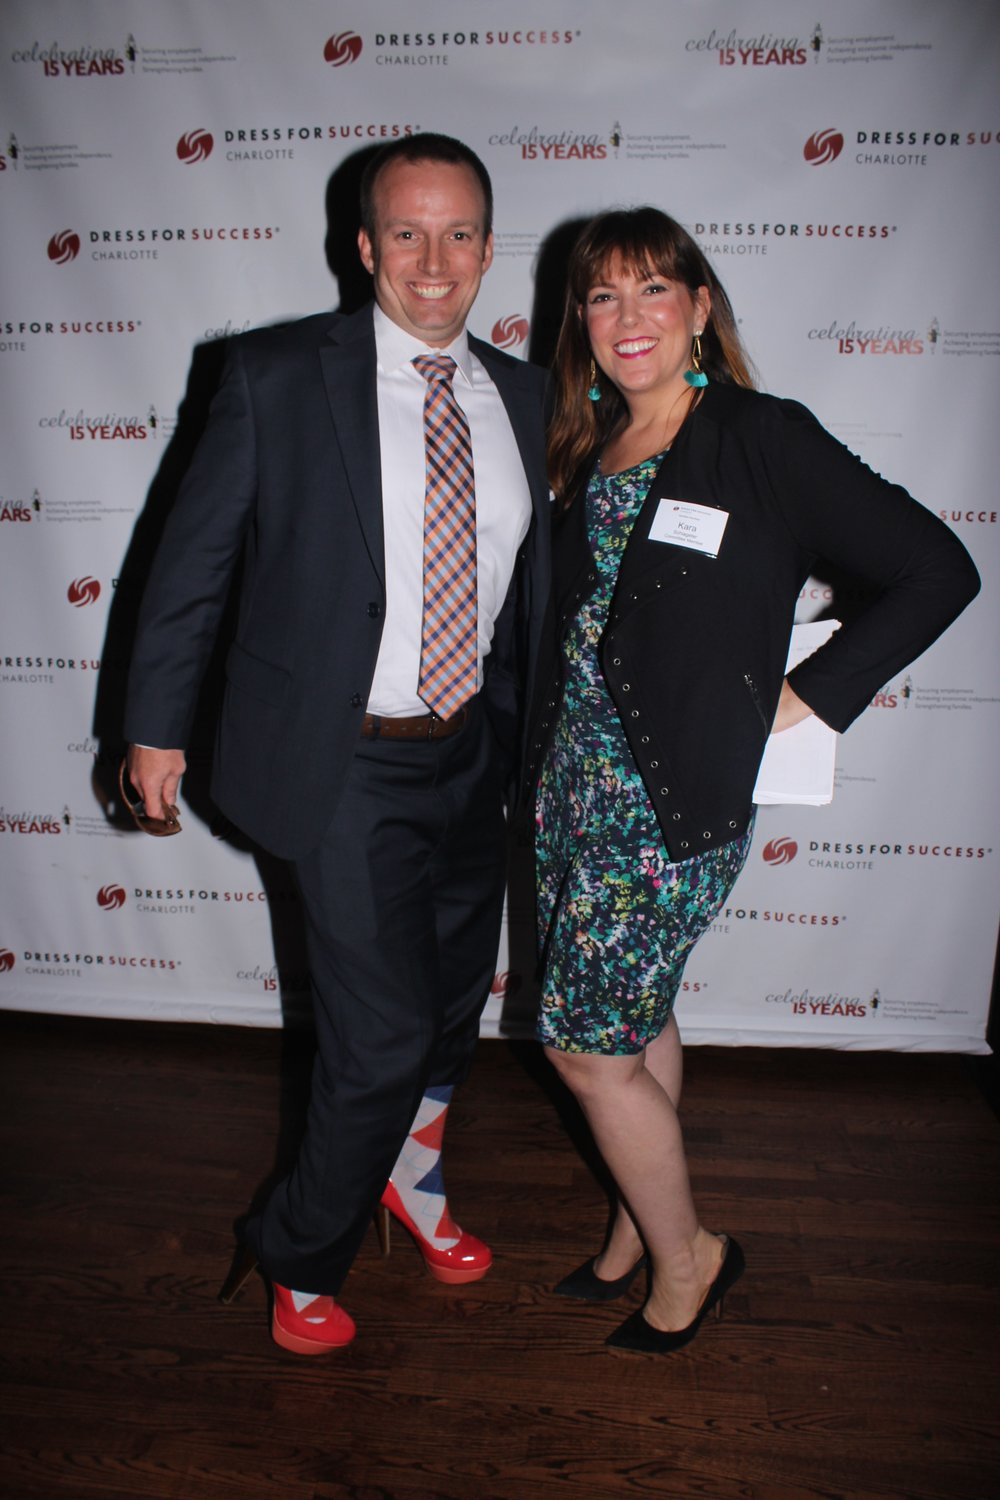 A guest poses with a swaggerer in his high heels.